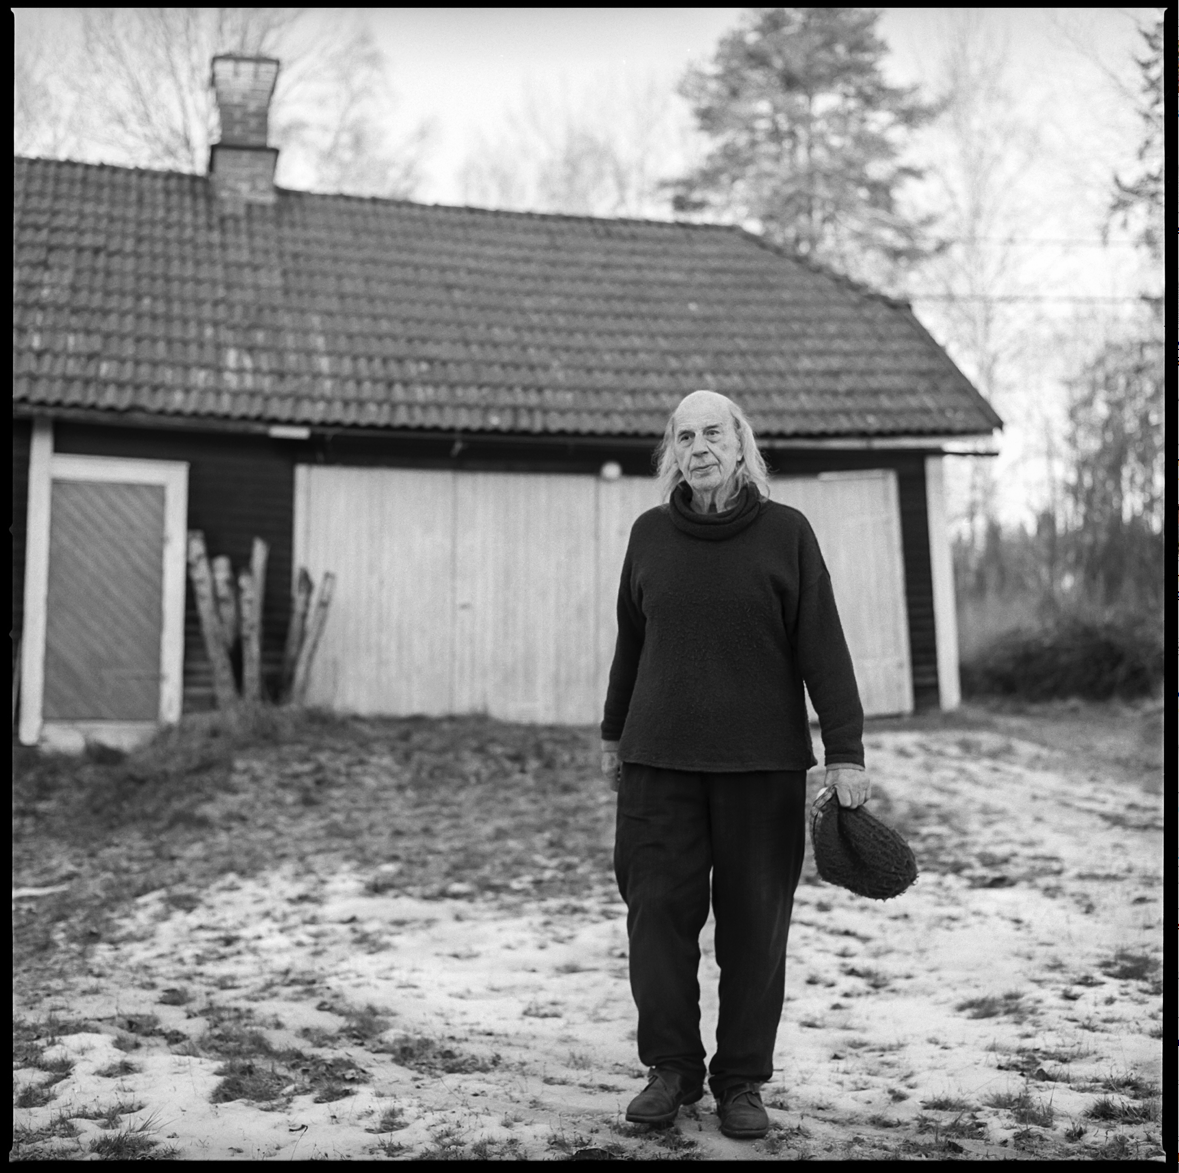 Gunnar Greiber, photo by Joakim Brolin. This photo is taken outside Helsinglight when Gunnar used to live and work there as an artist.